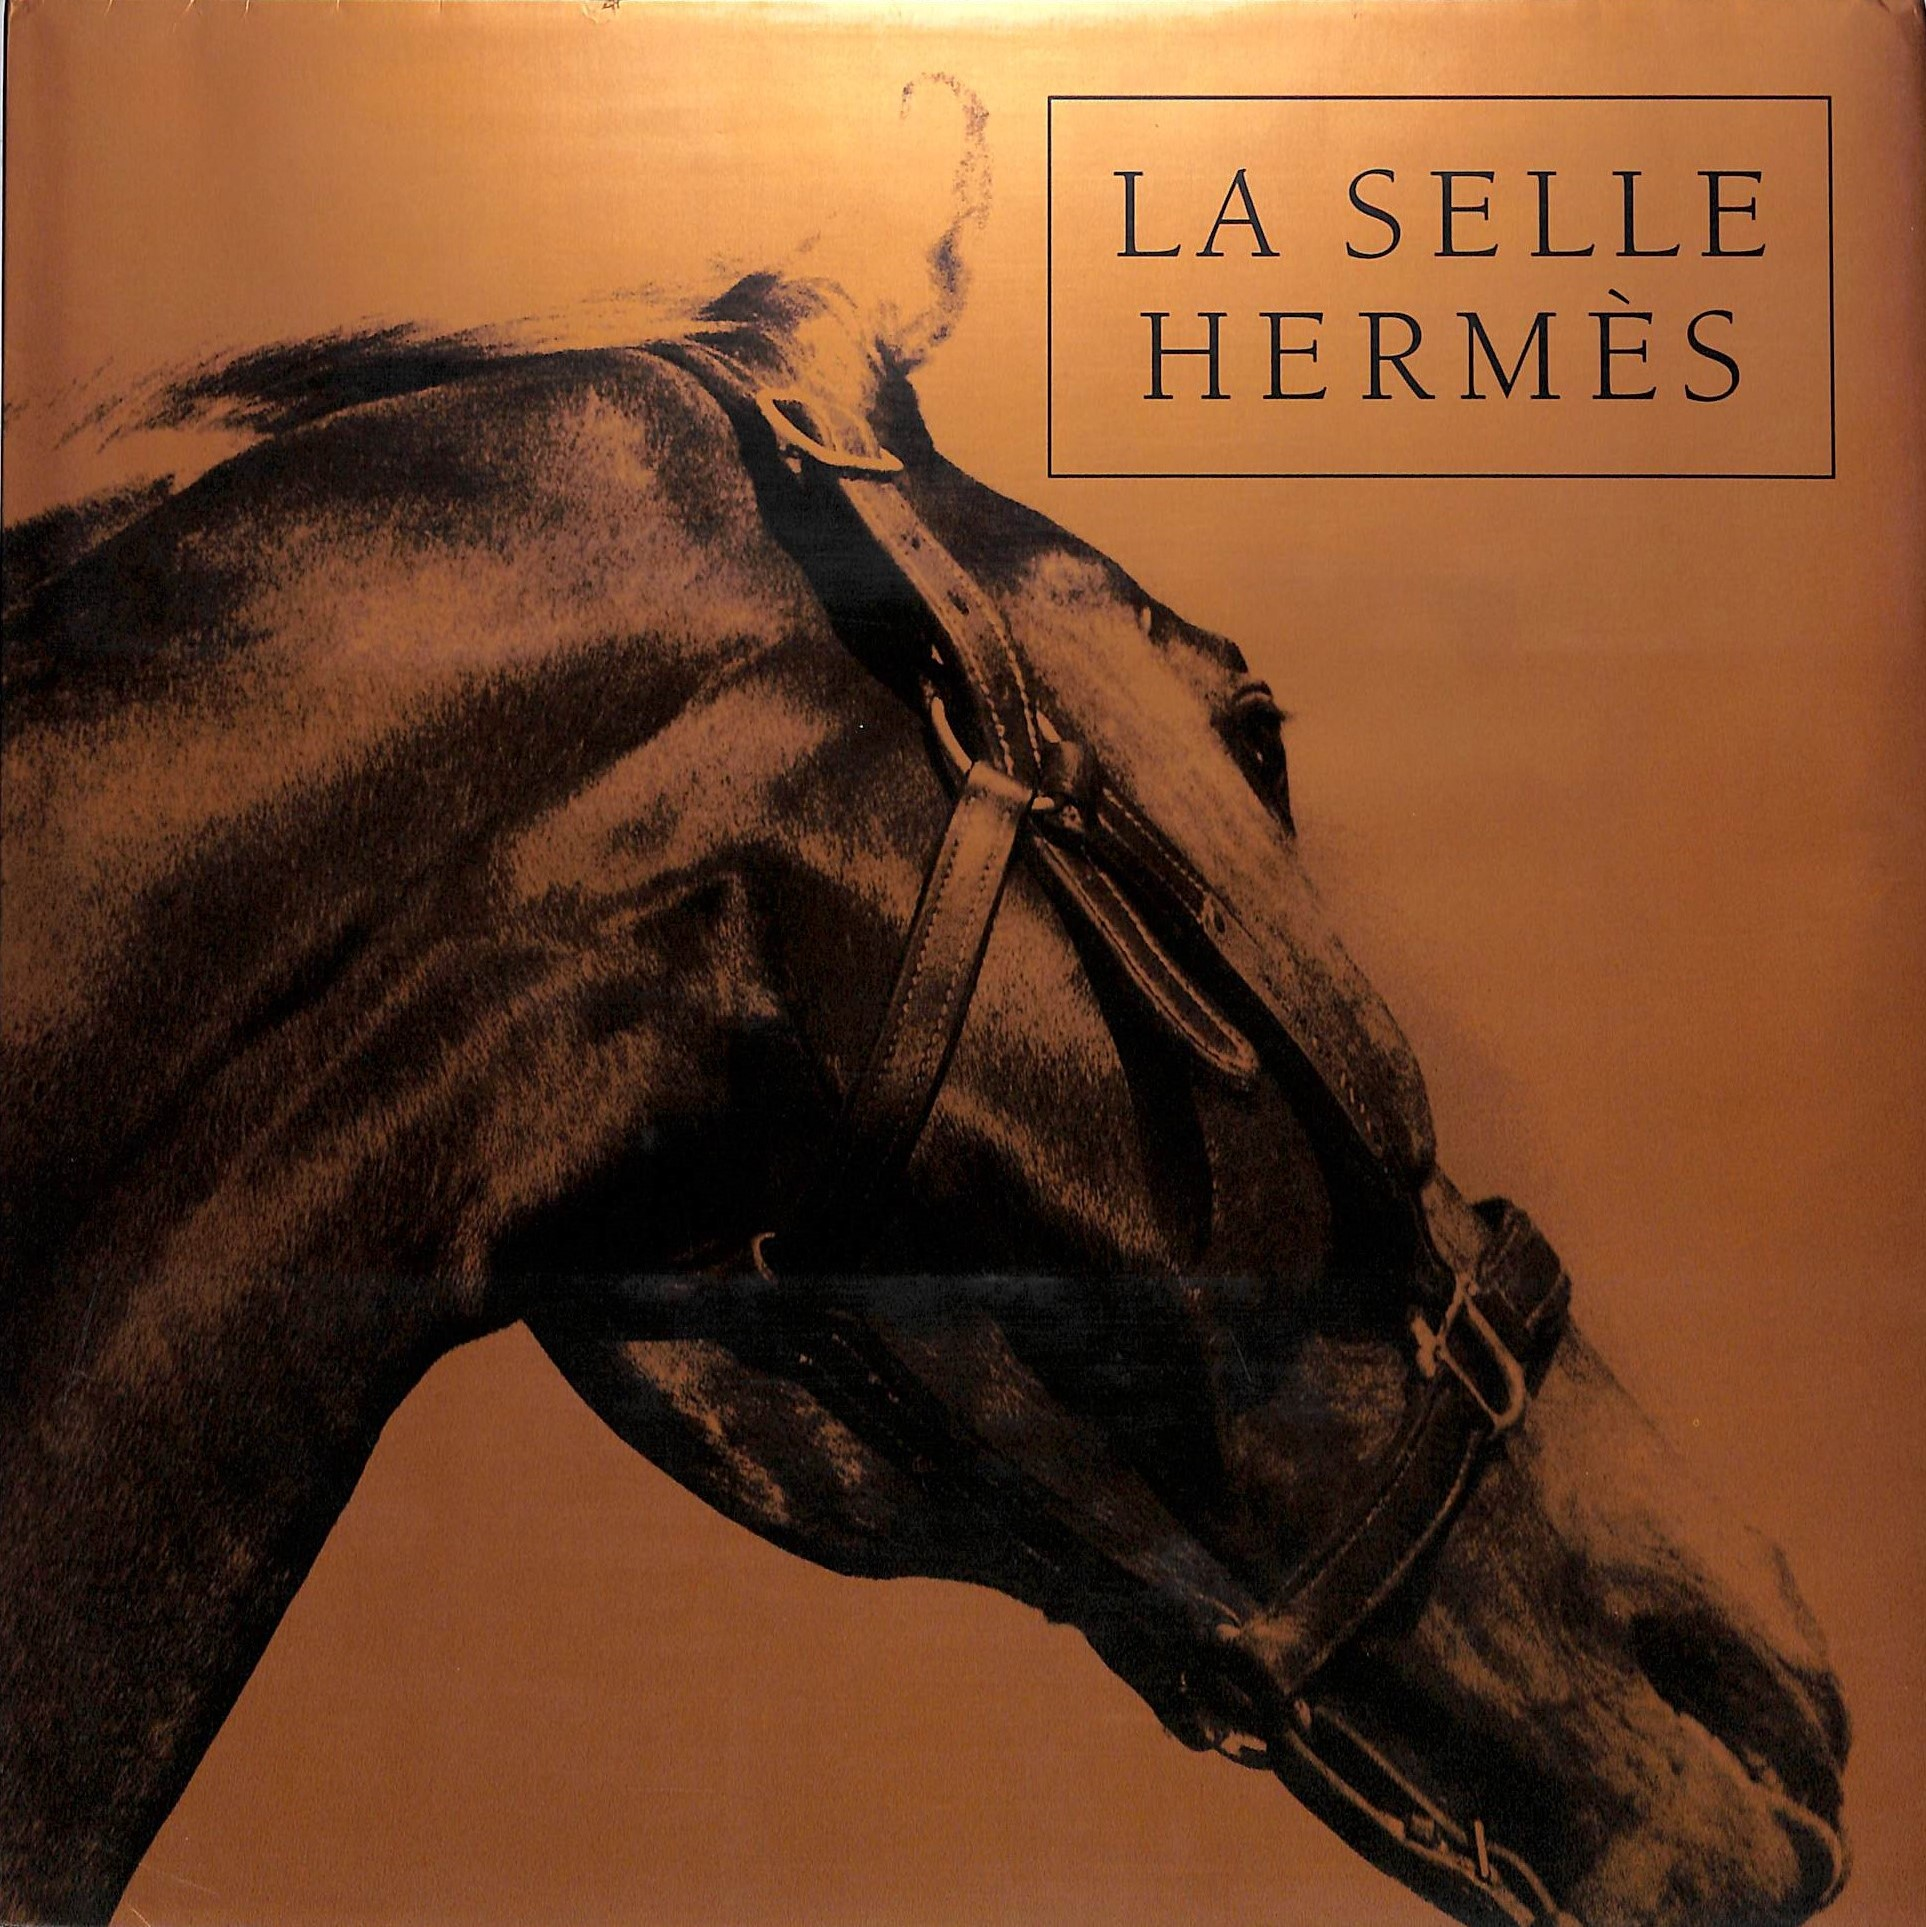 La Selle Hermes The book covers the noted quality made French Hermes saddle. With information on various types of Hermes saddles. The book is written in French.